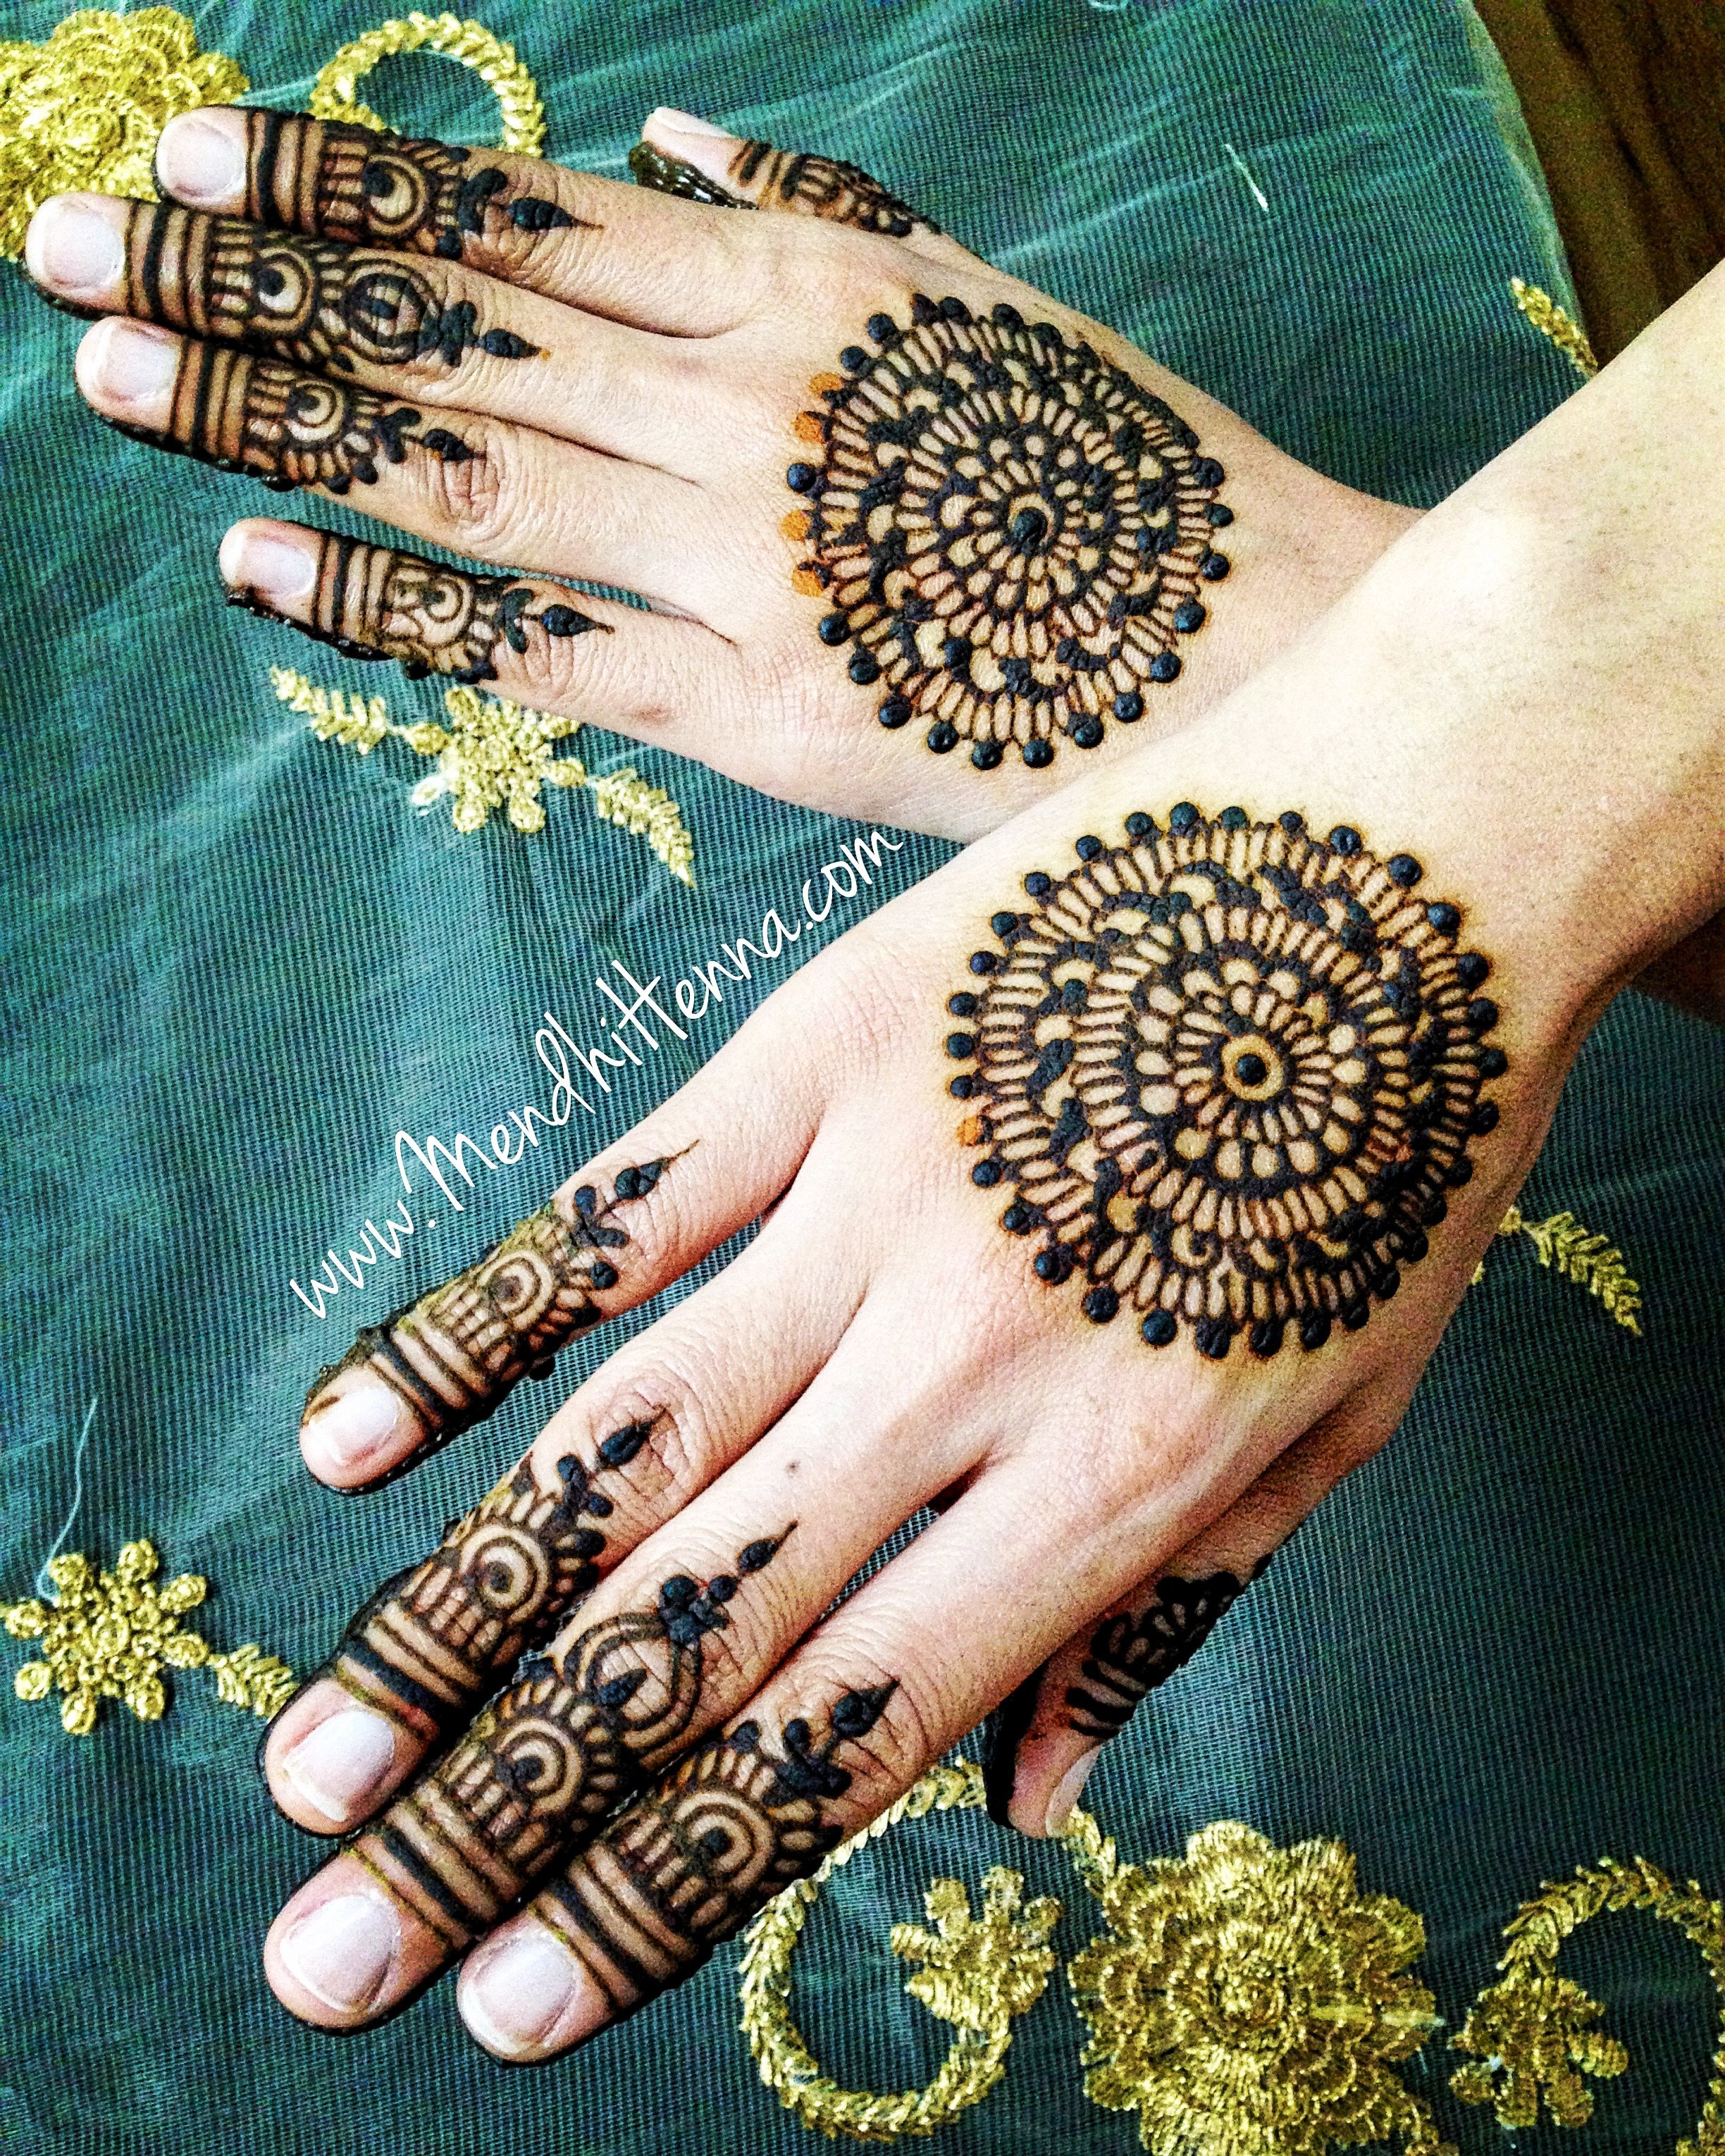 Simple henna designs pretty long weekend email address mehendi hennas bridal parties ash patterns also pin by darcey webb on mendhi pinterest rh